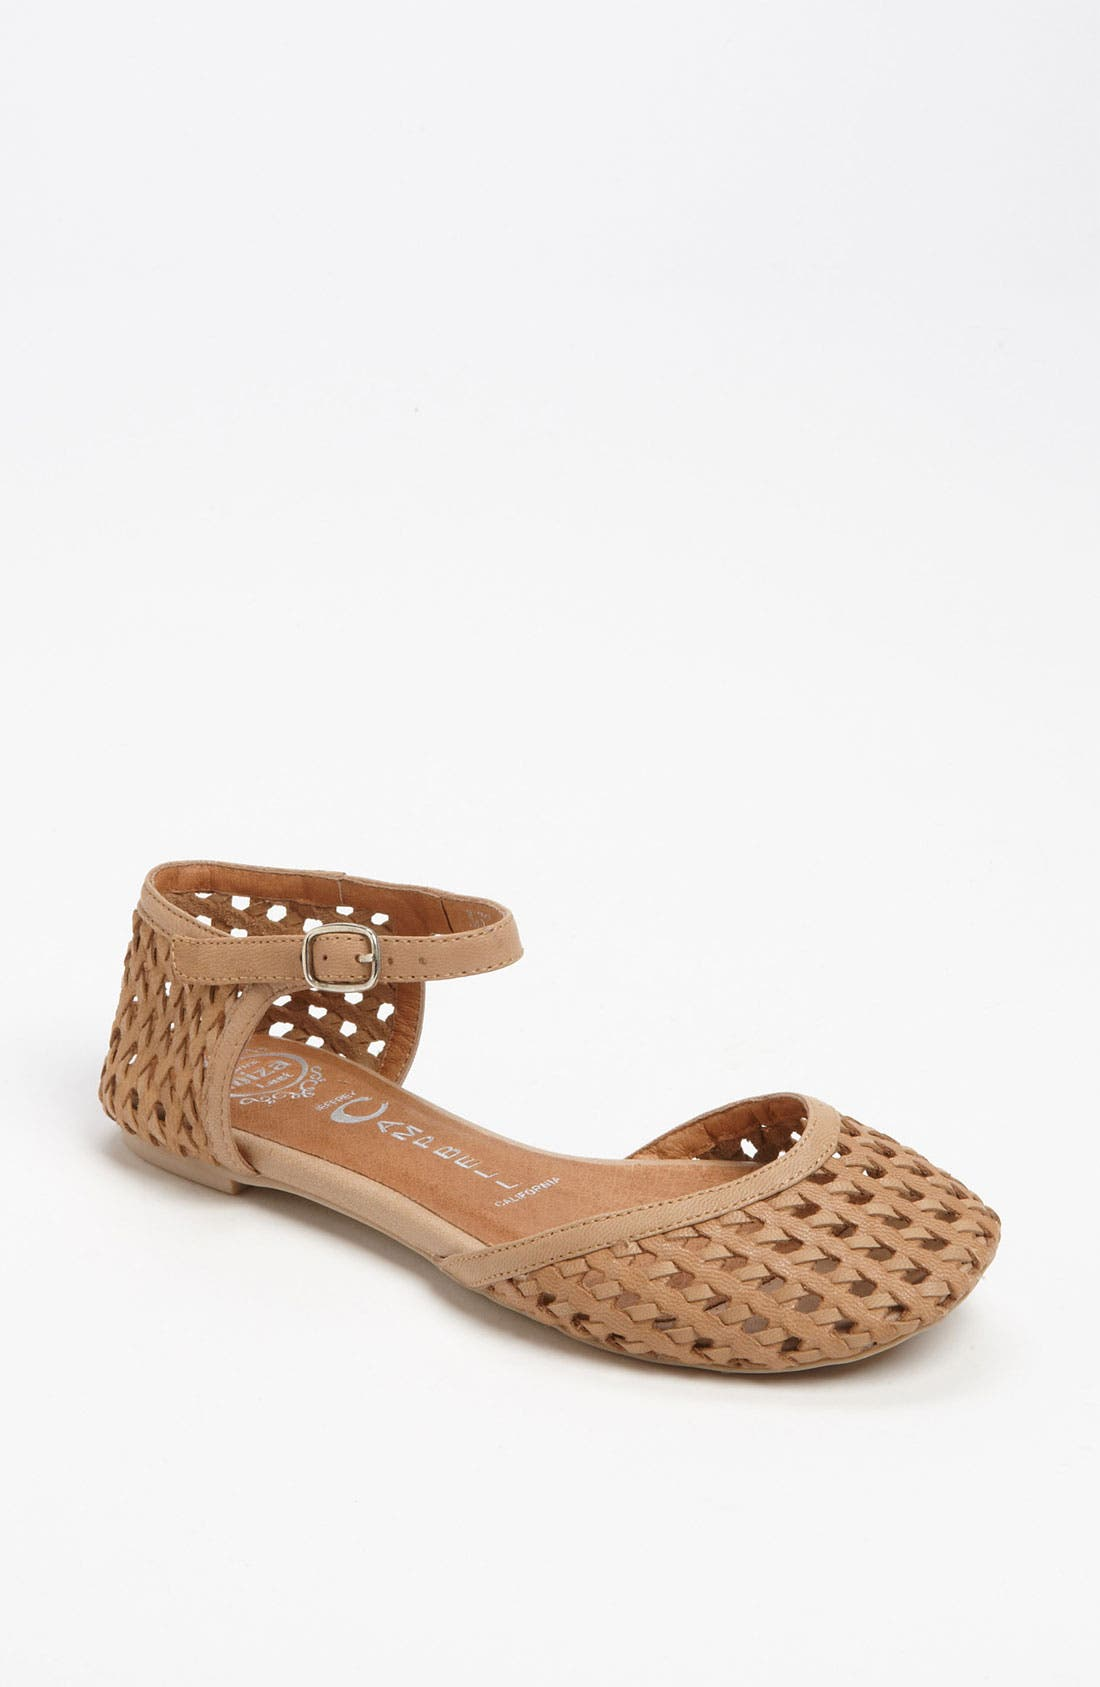 Alternate Image 1 Selected - Jeffrey Campbell 'Marcy' Sandal